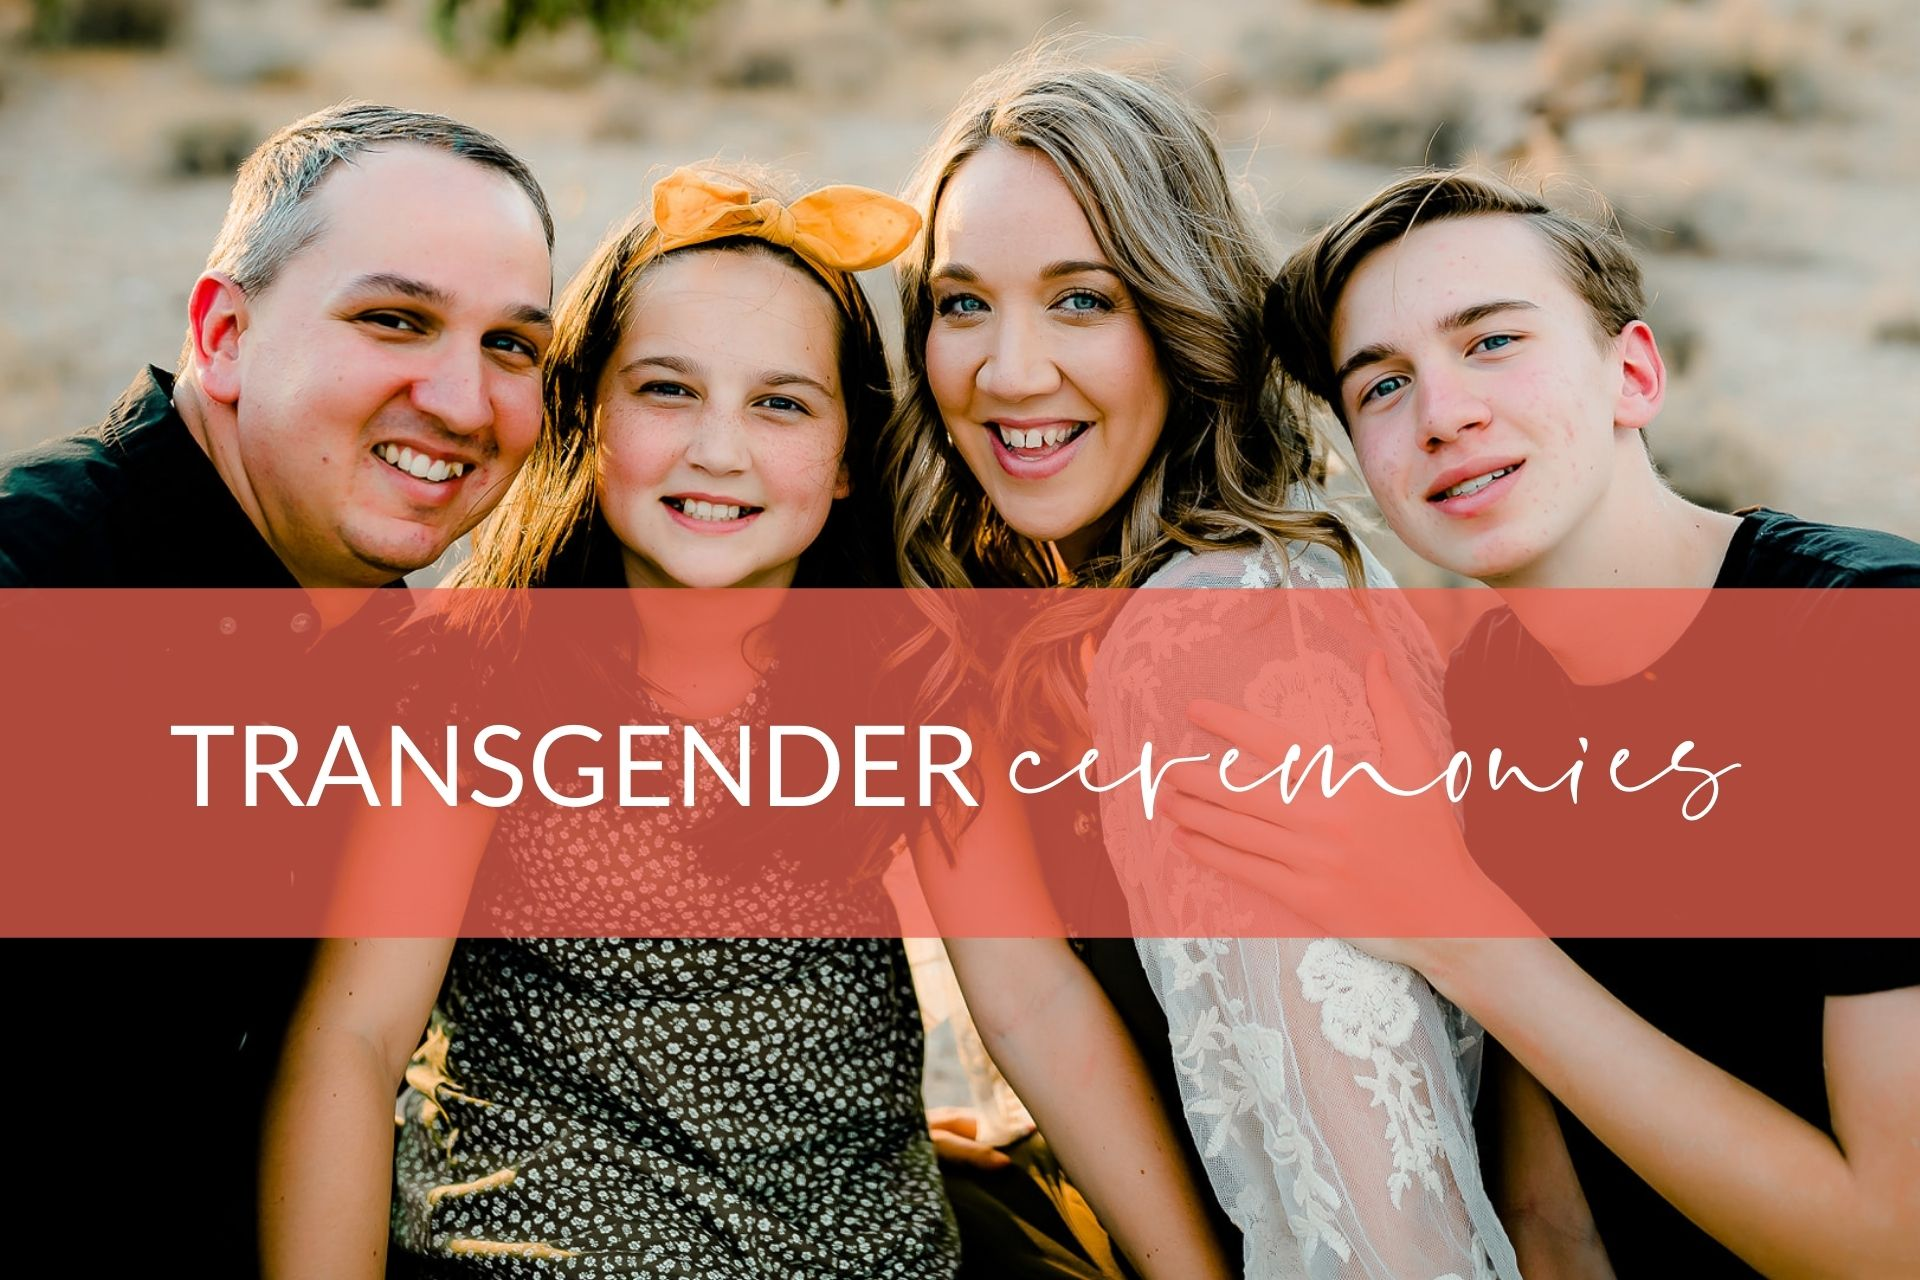 Transgender Ceremonies